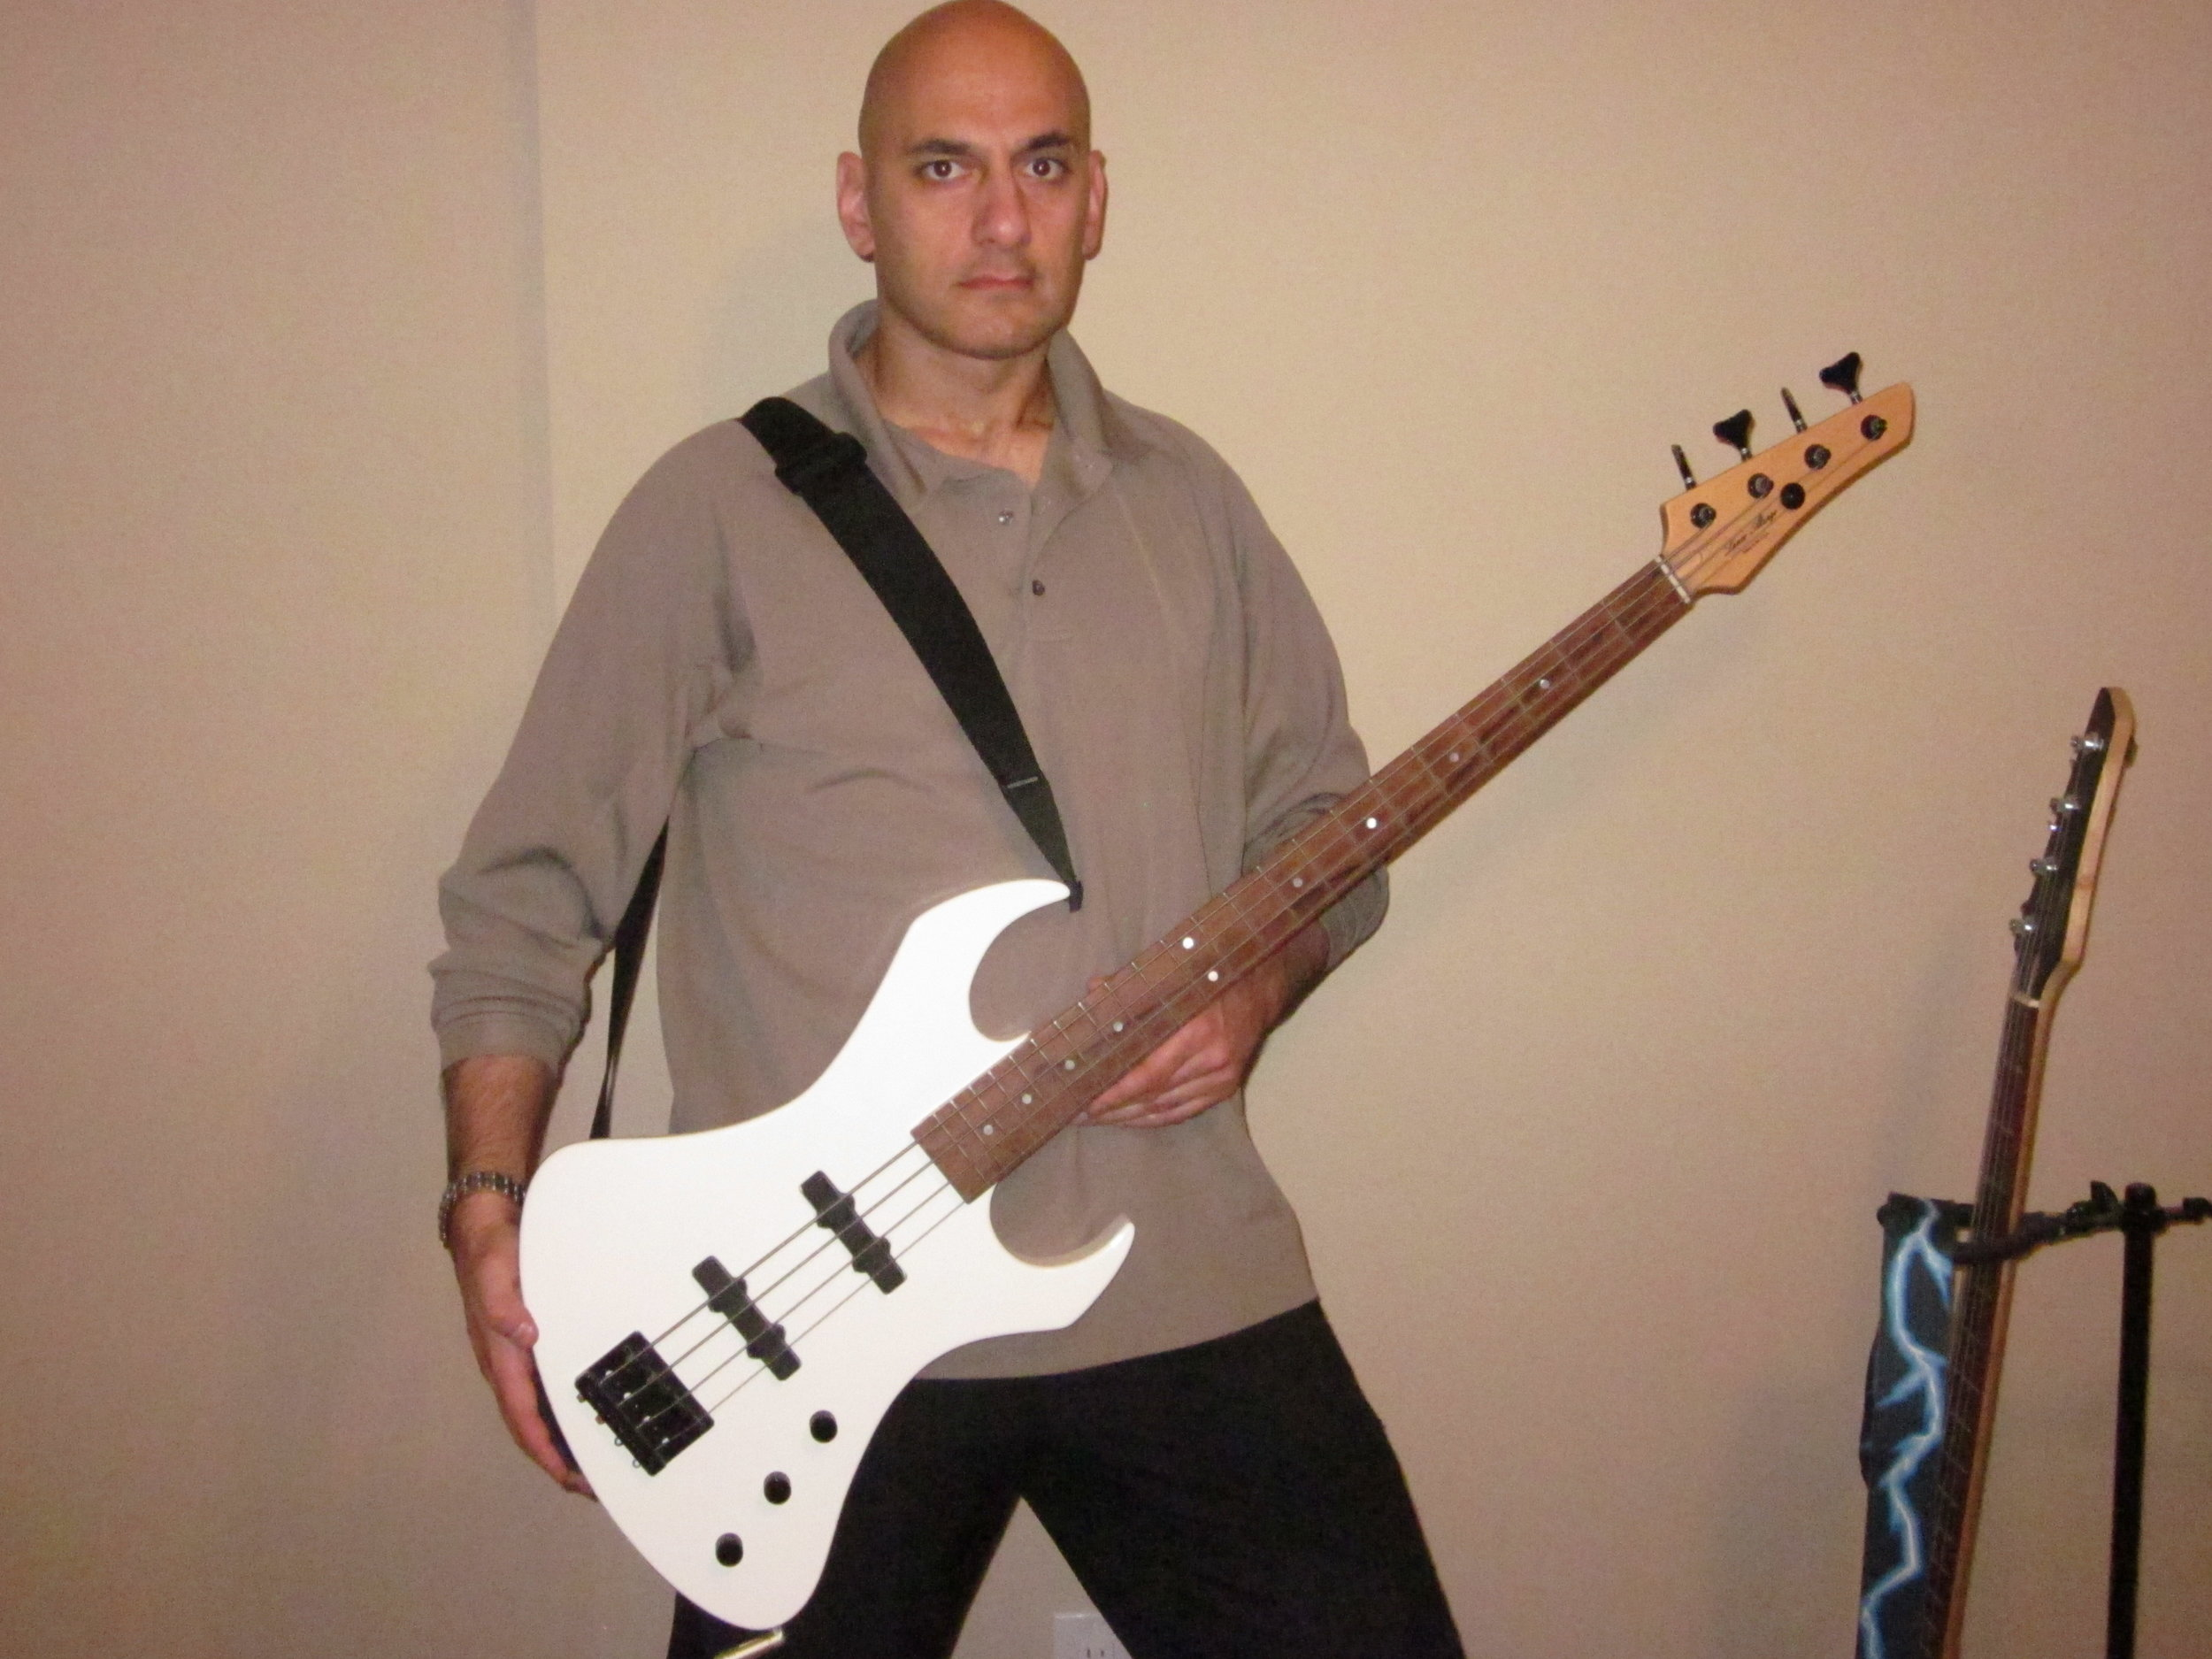 Lev Kand with A/V bass